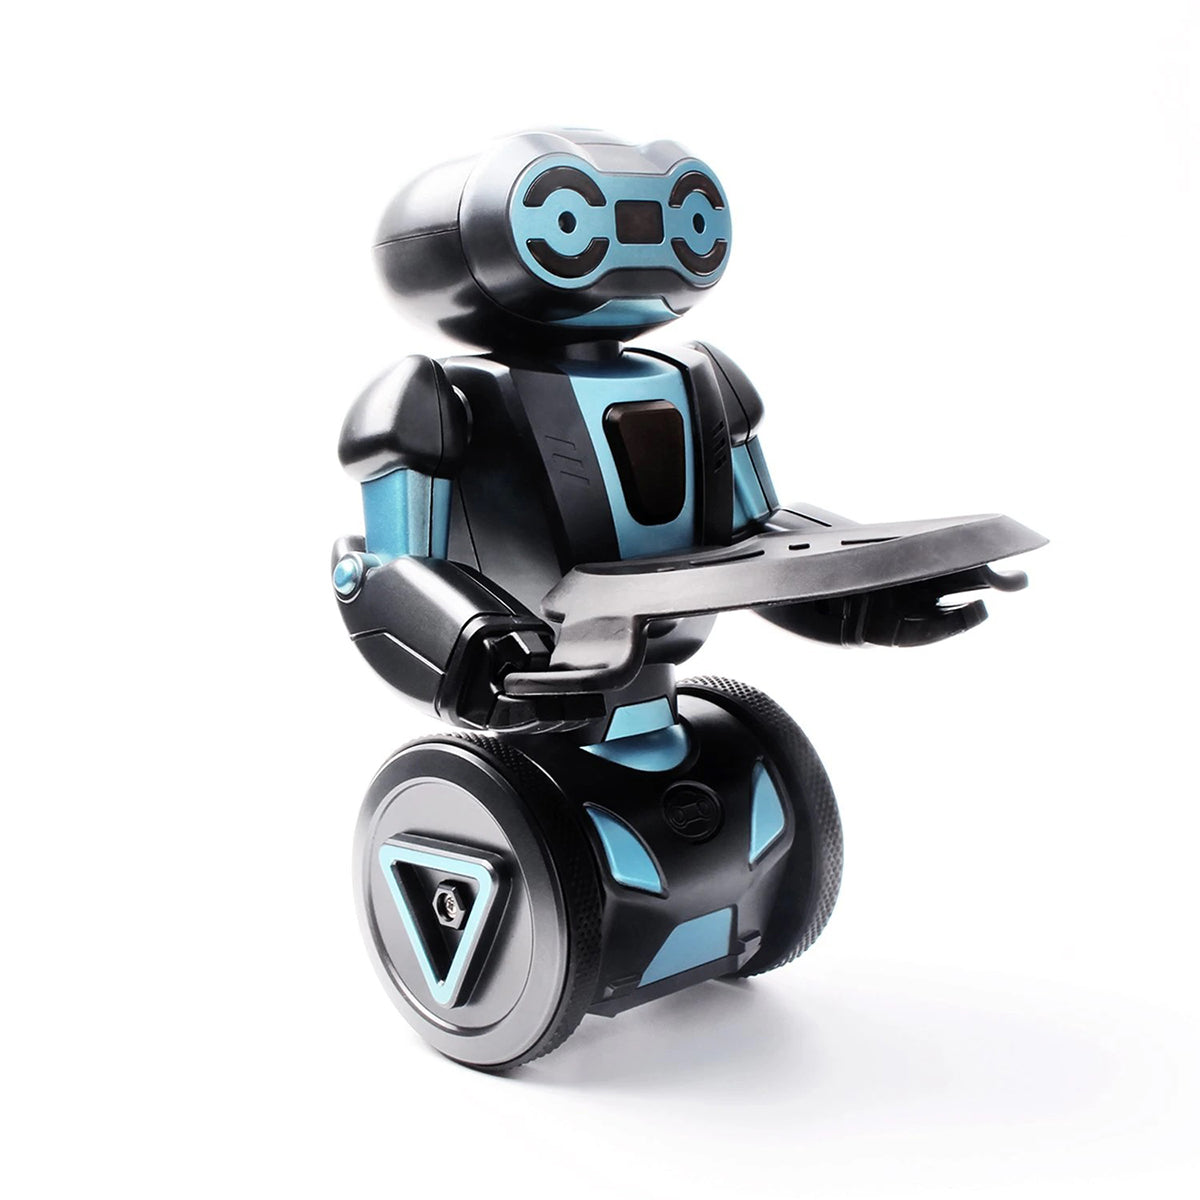 Self-Balancing Intelligent Humanoid Robot